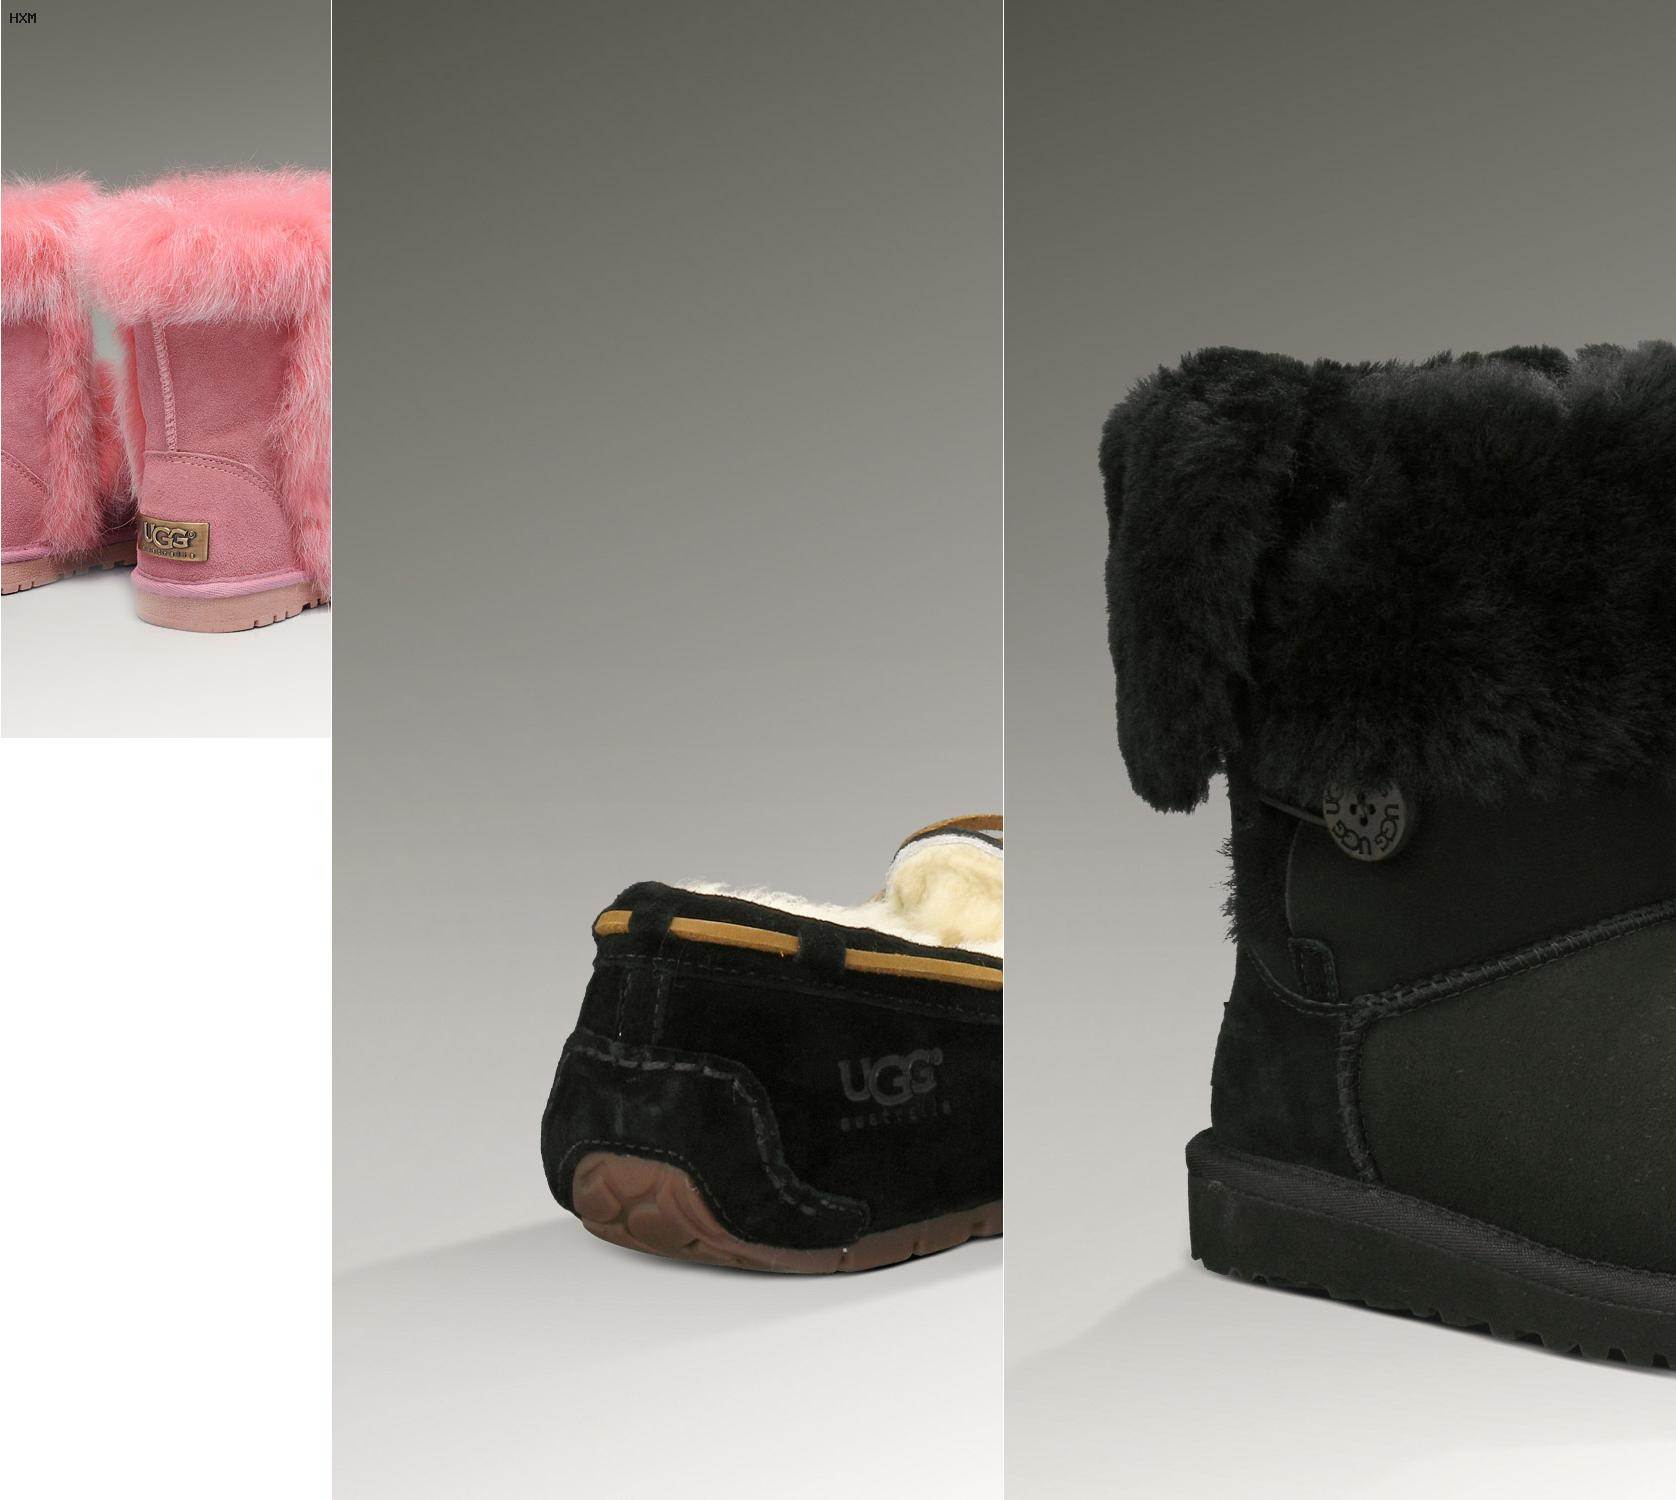 nouvelle collection ugg femme 2020